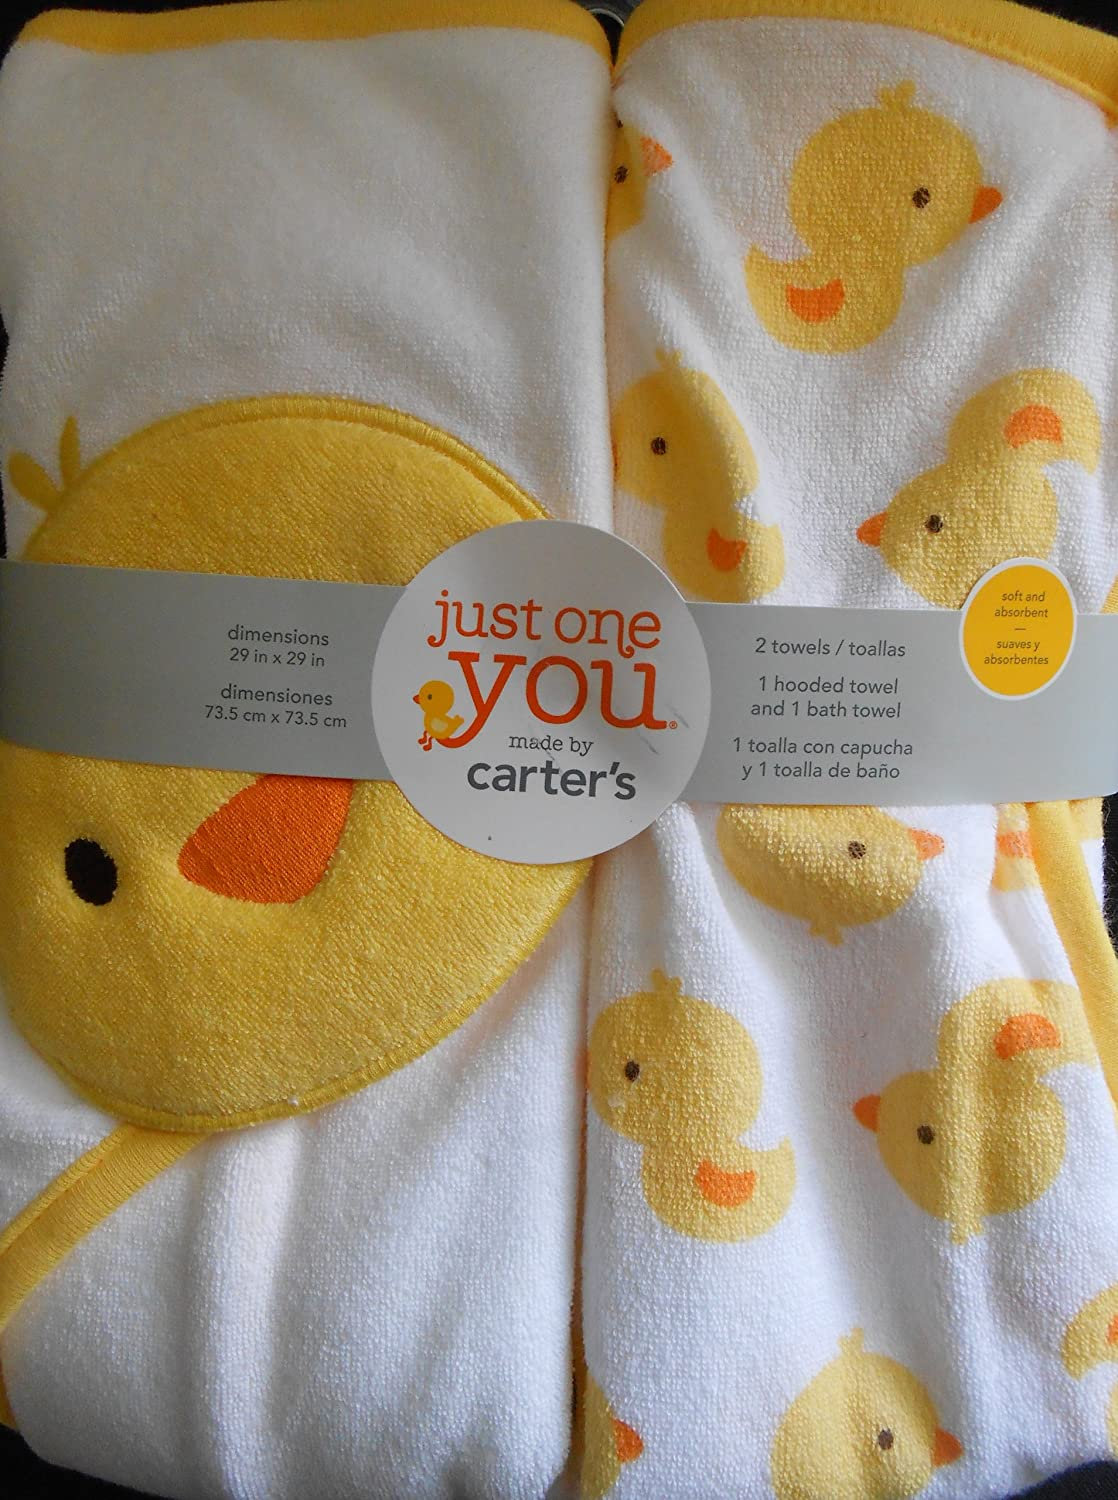 Amazon.com : JUST ONE YOU Made by Carters Baby Newborn 2 Pack Hooded Towel & Bath Towel Set - Yellow duck : Baby